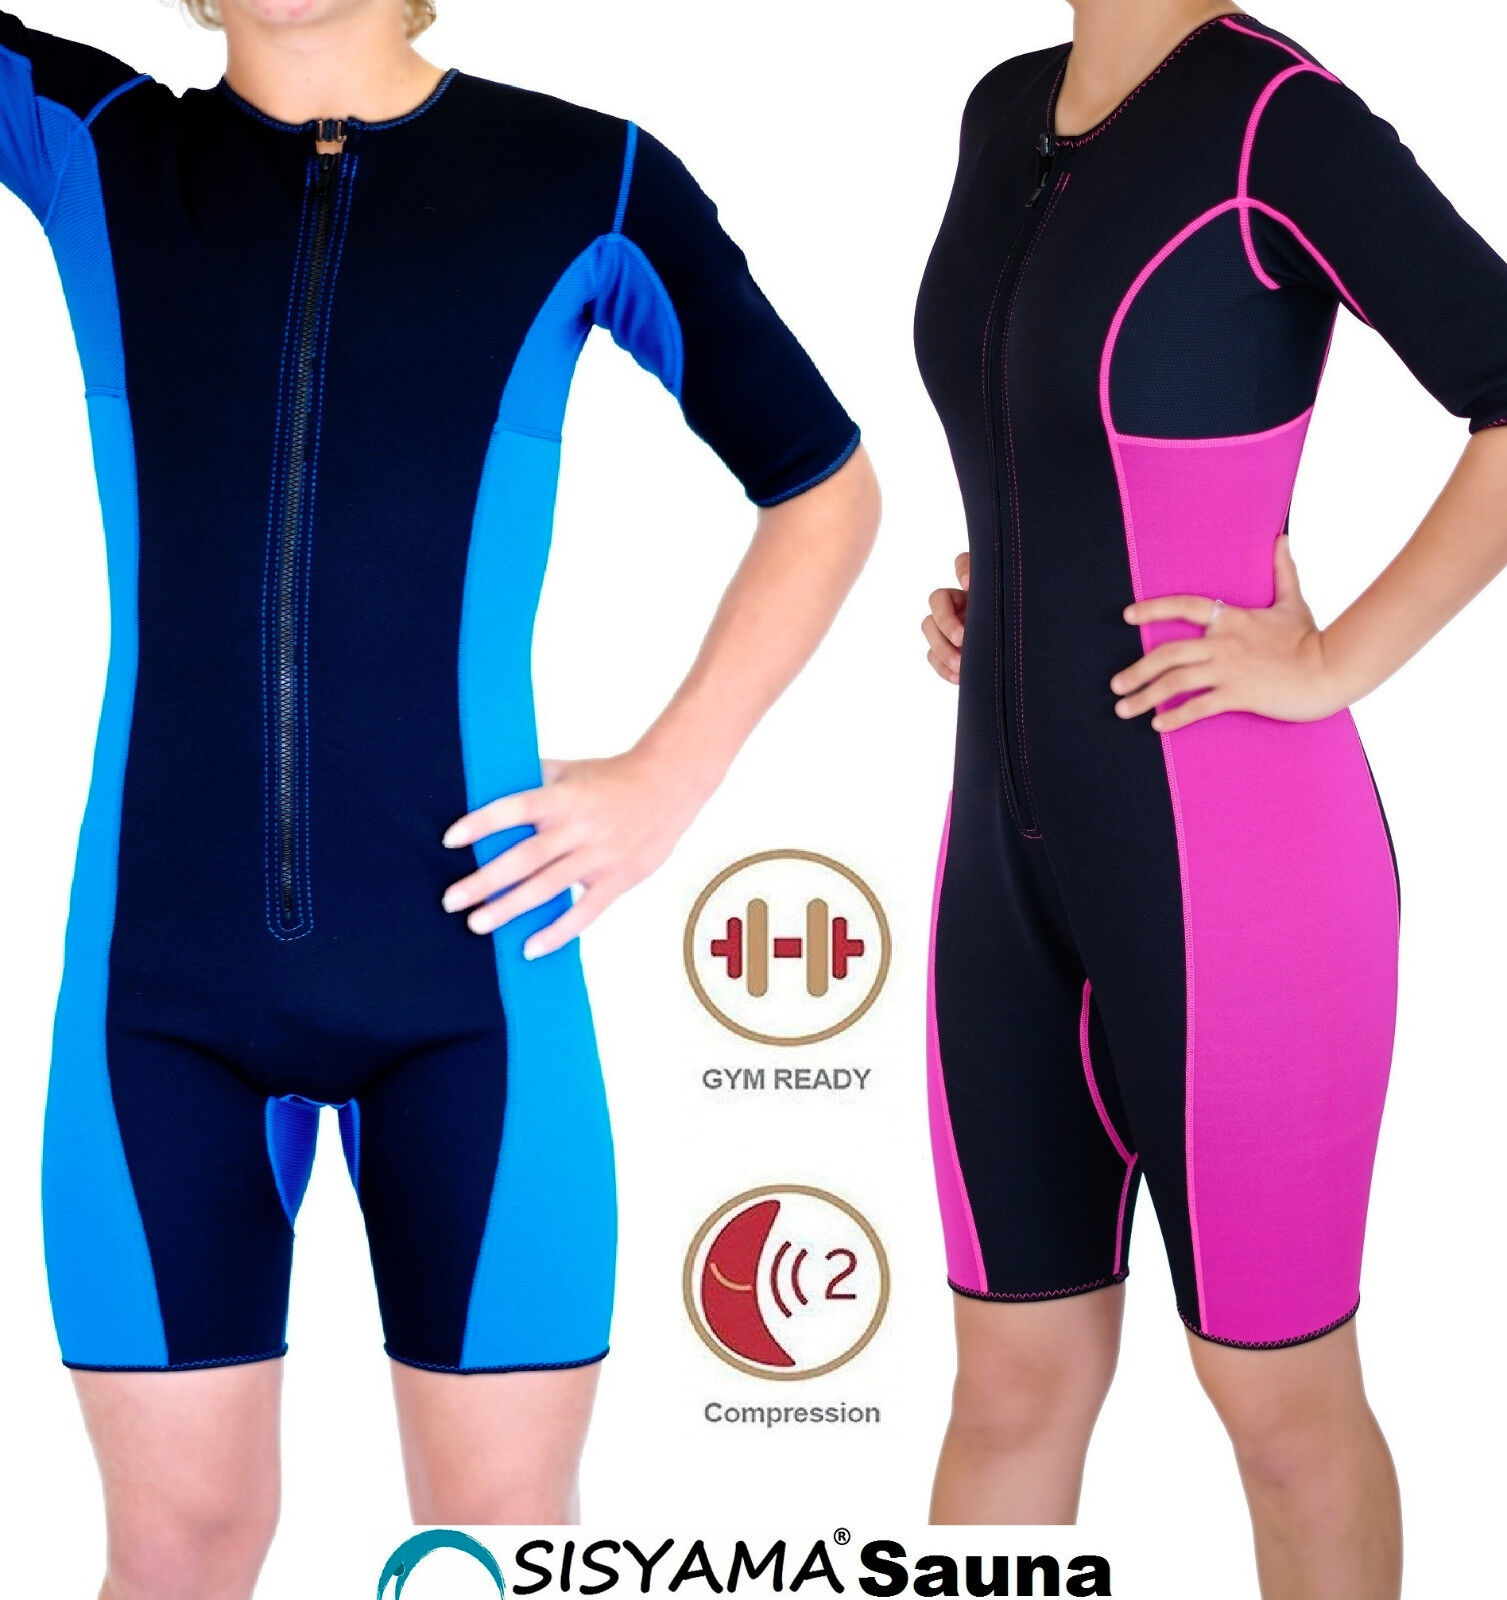 Neoprene Sauna Sweat Workout Men Women  Hot Suit Unisex Weight Loss Cellulite  at the lowest price